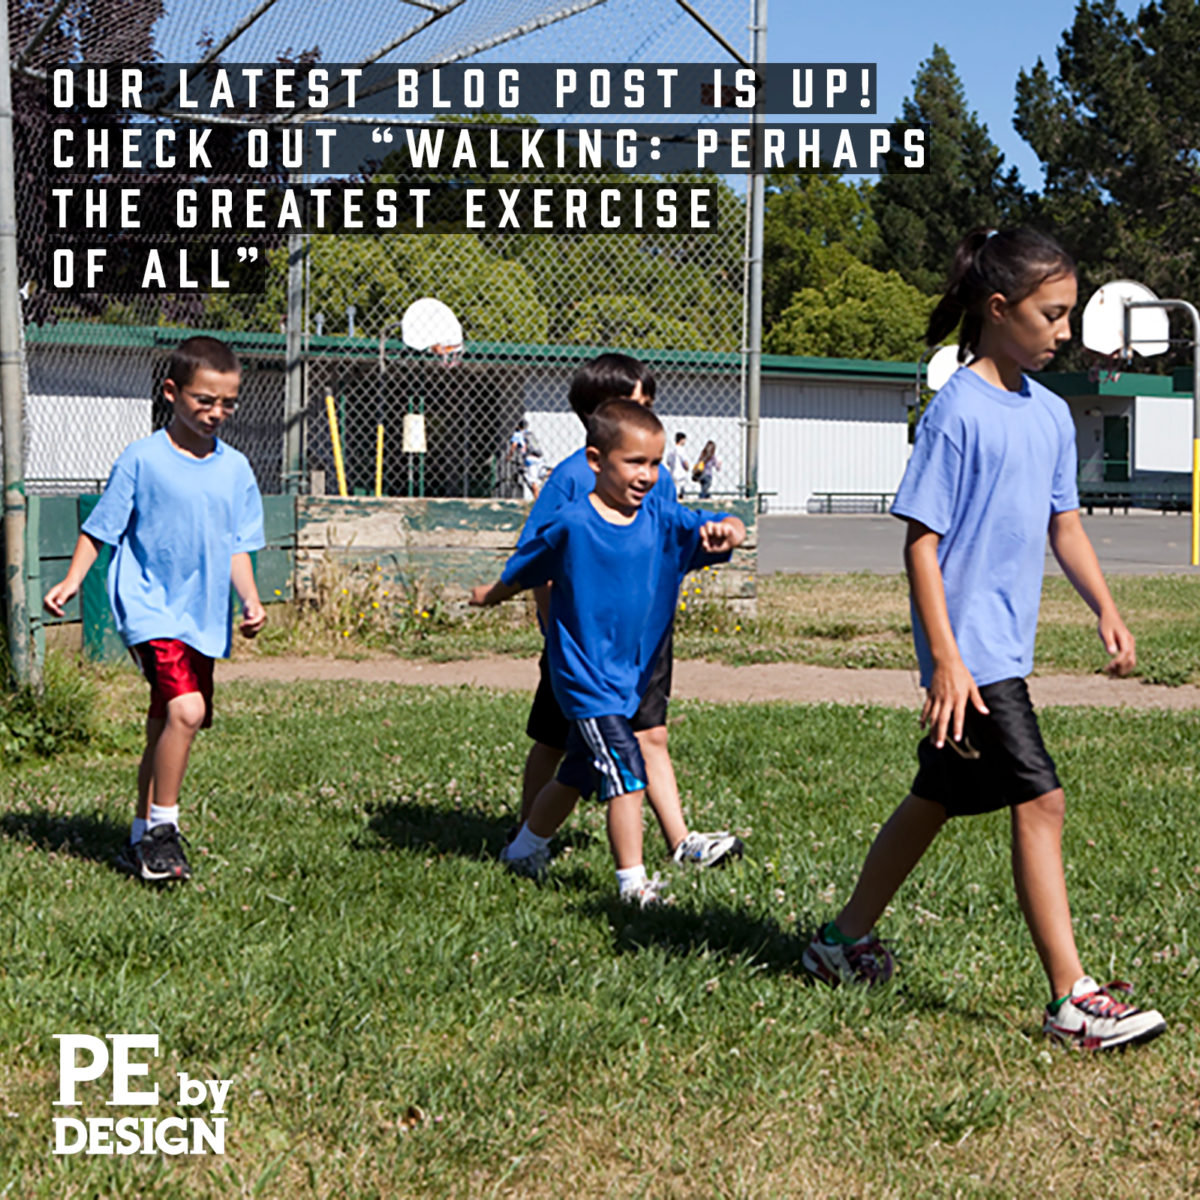 Walking:  Perhaps the Greatest Exercise of All